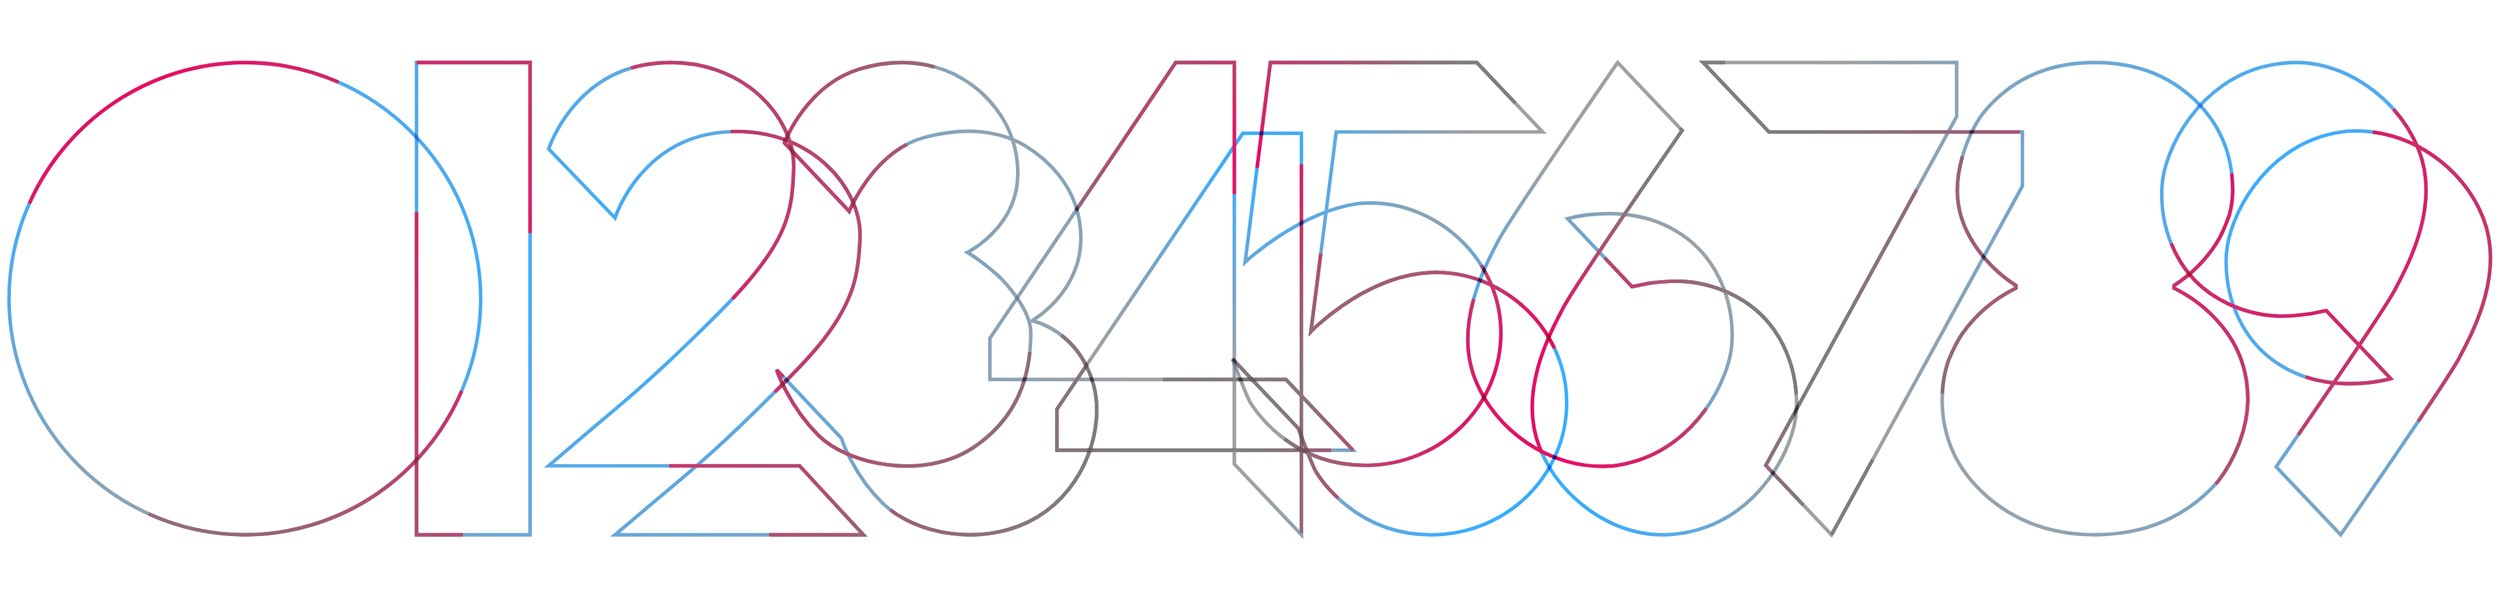 Numbers used in Google IO 2016 countdown